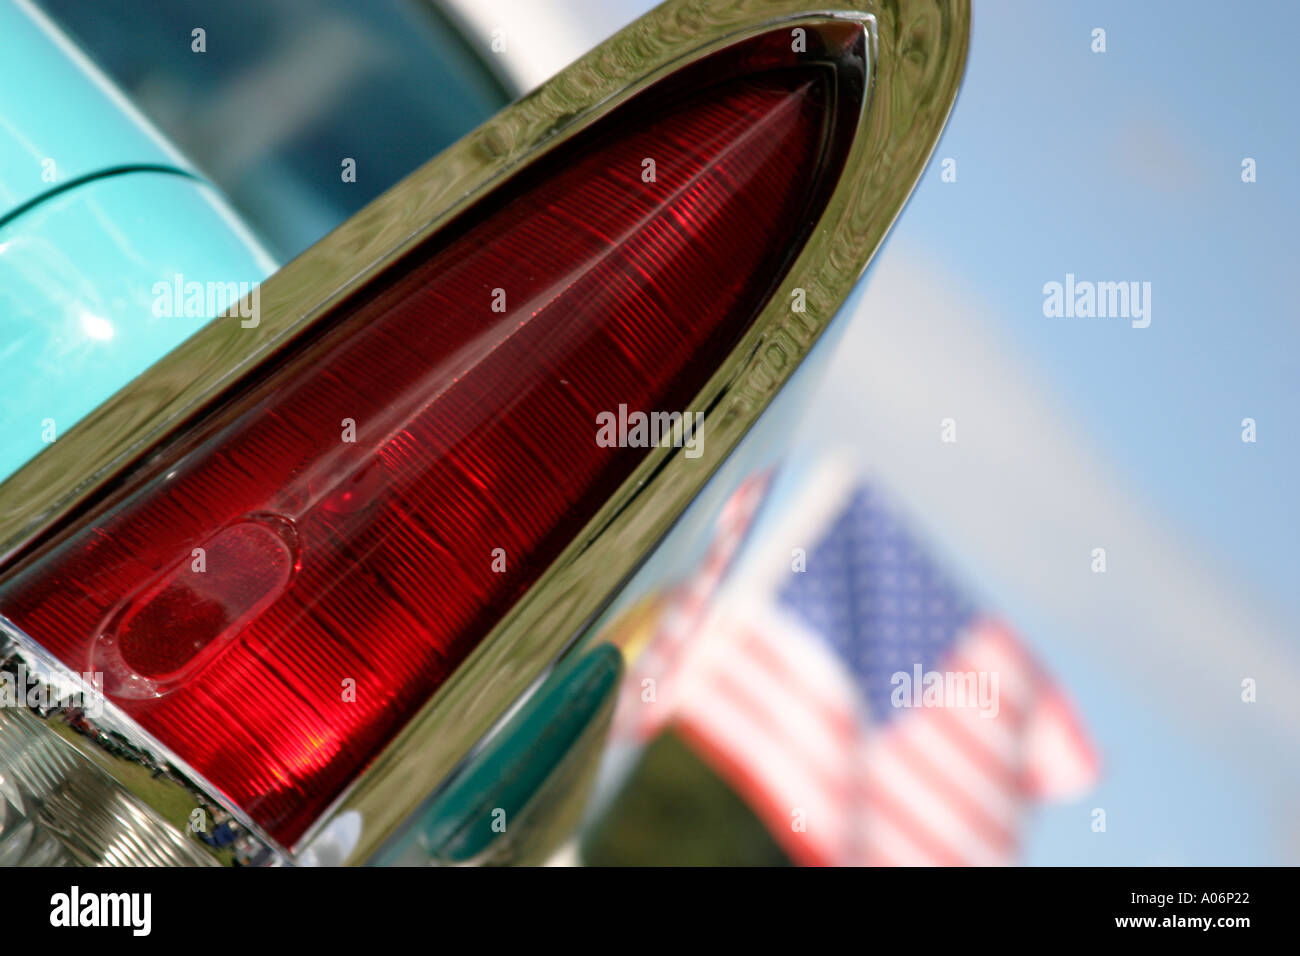 Classic American car with Stars and Stripes flag - Stock Image